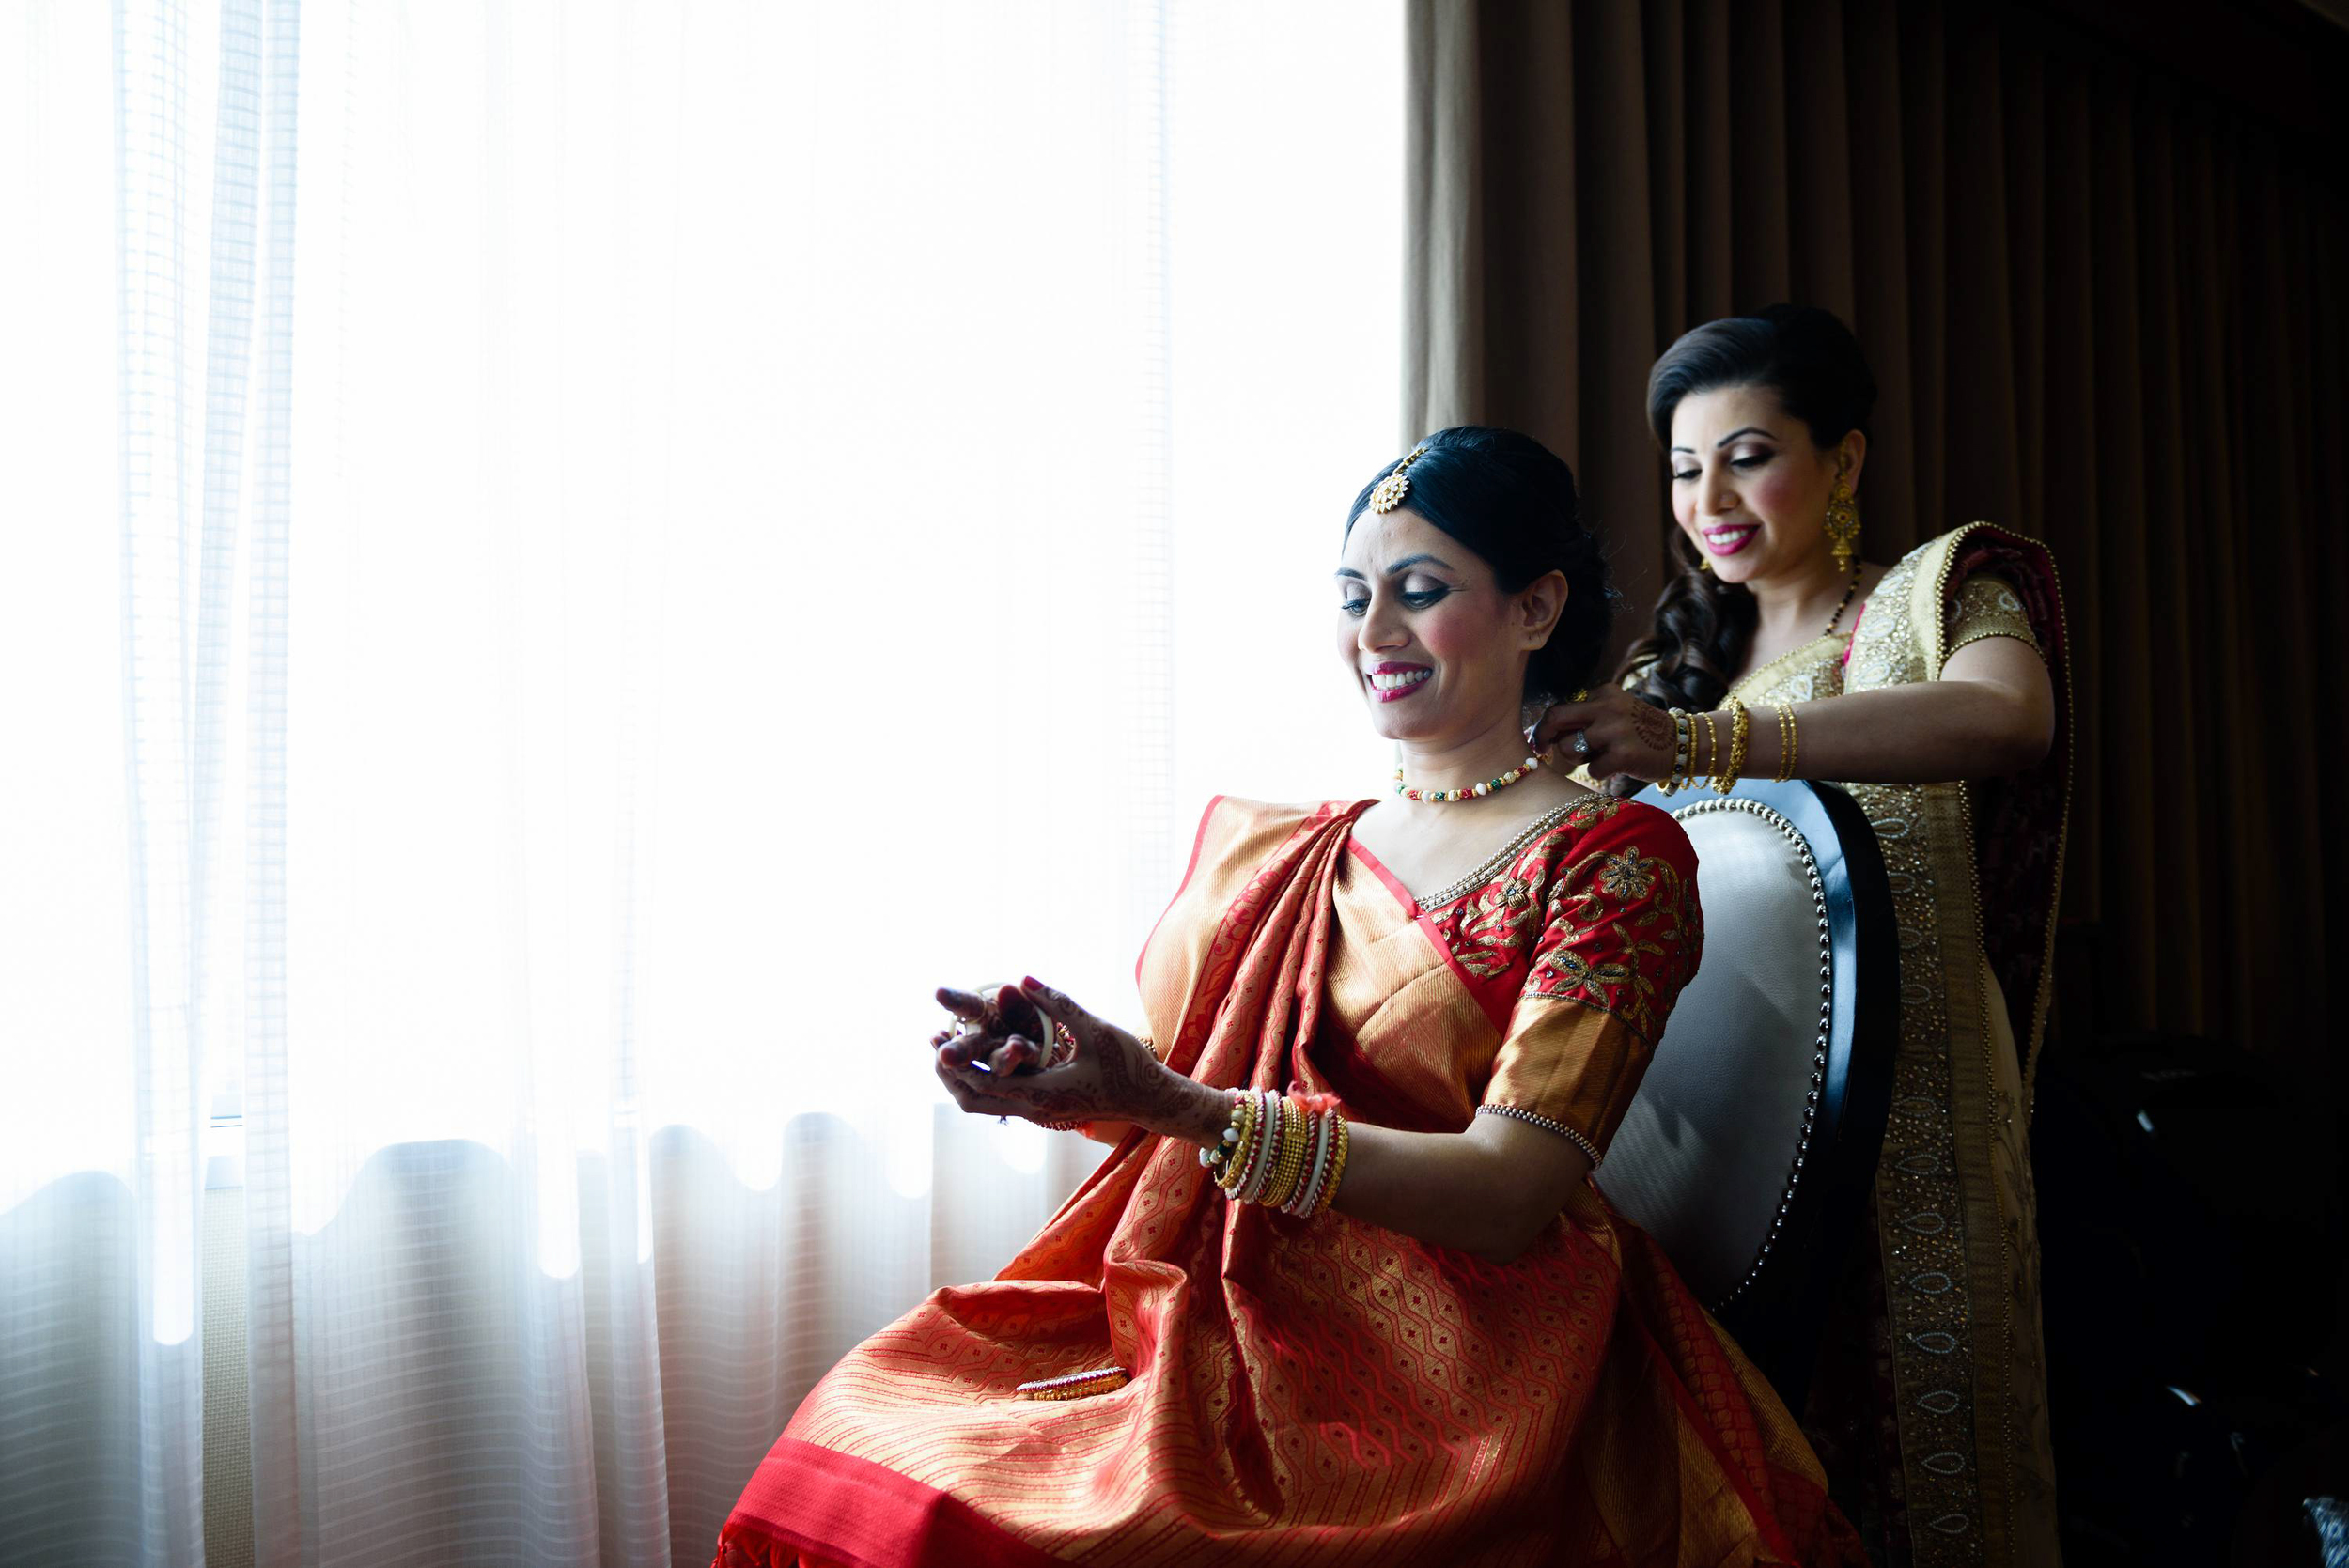 bride getting ready at the sheraton mahwah nj. This image captures a very sweet moment between the bride and her sister helping her getting ready.